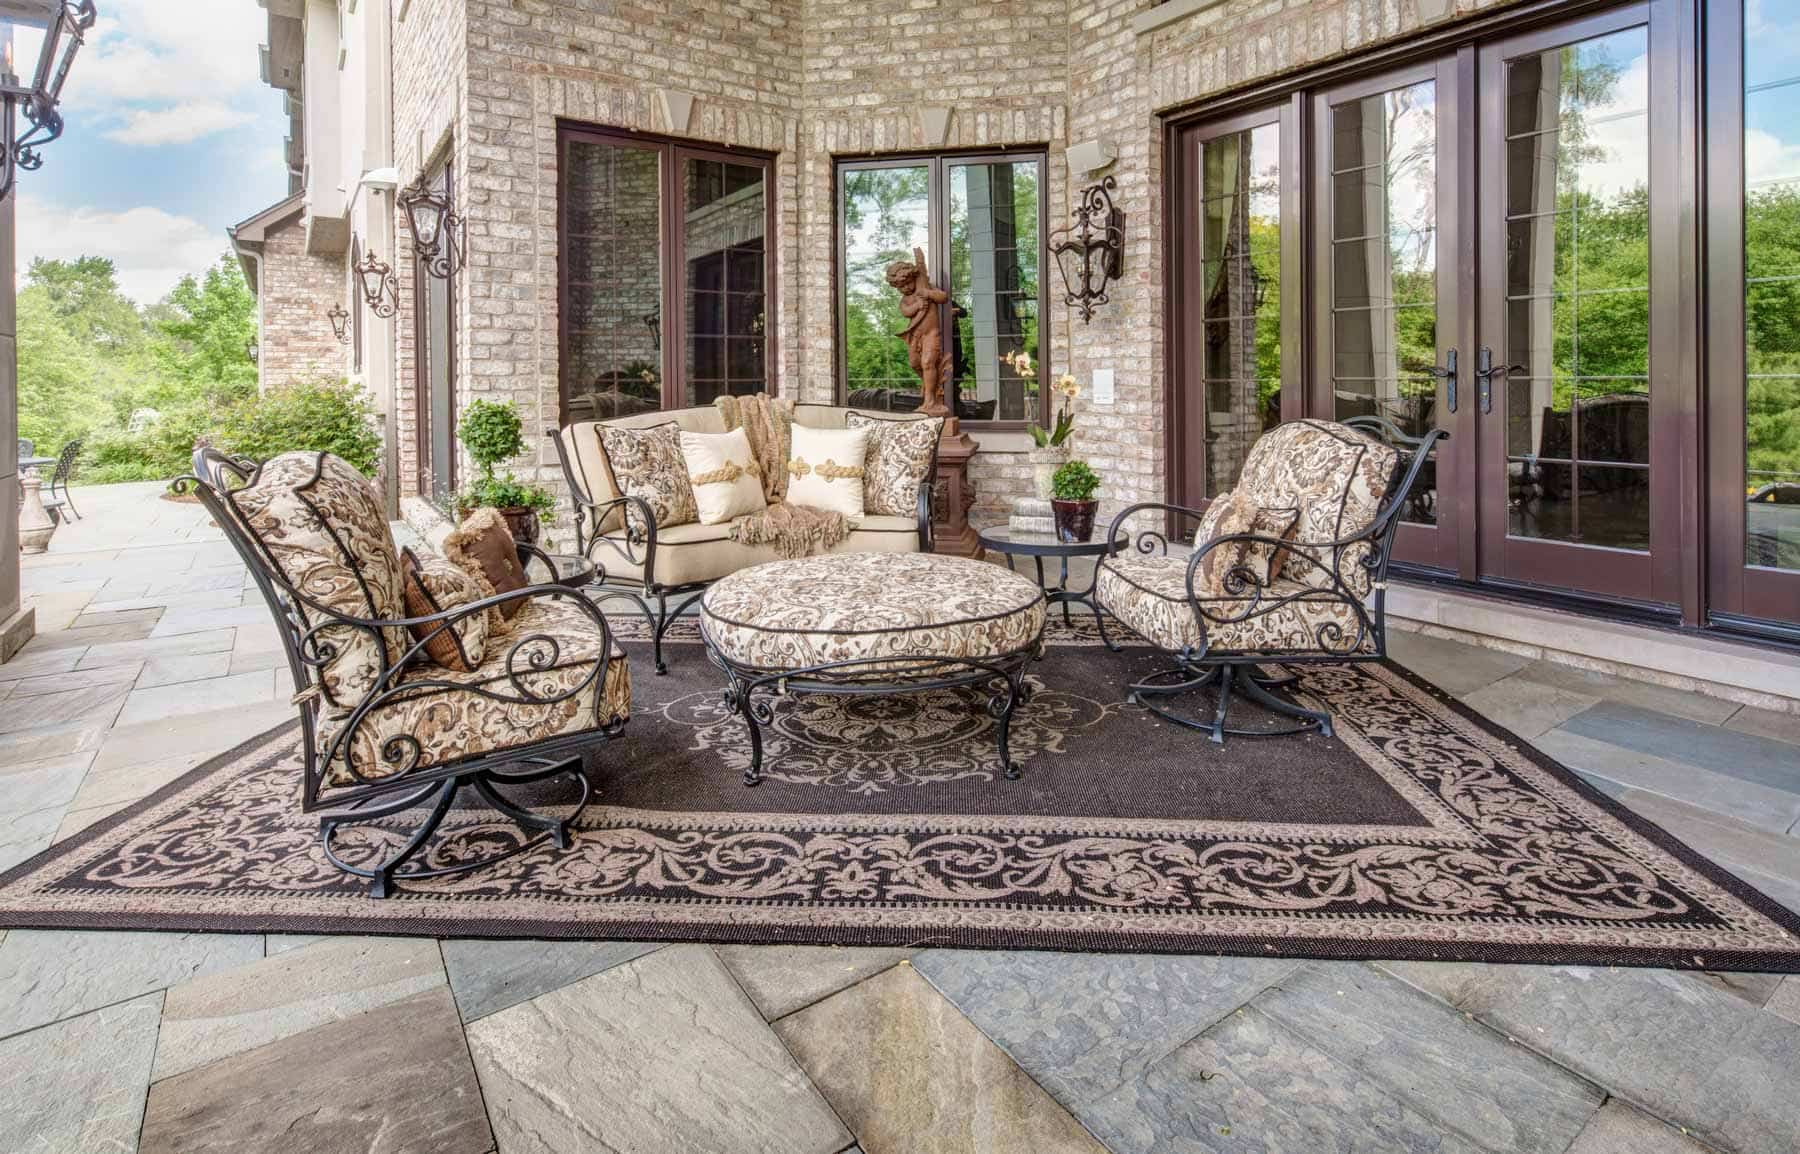 Superbe Luxury Outdoor Patio Furniture And Rug